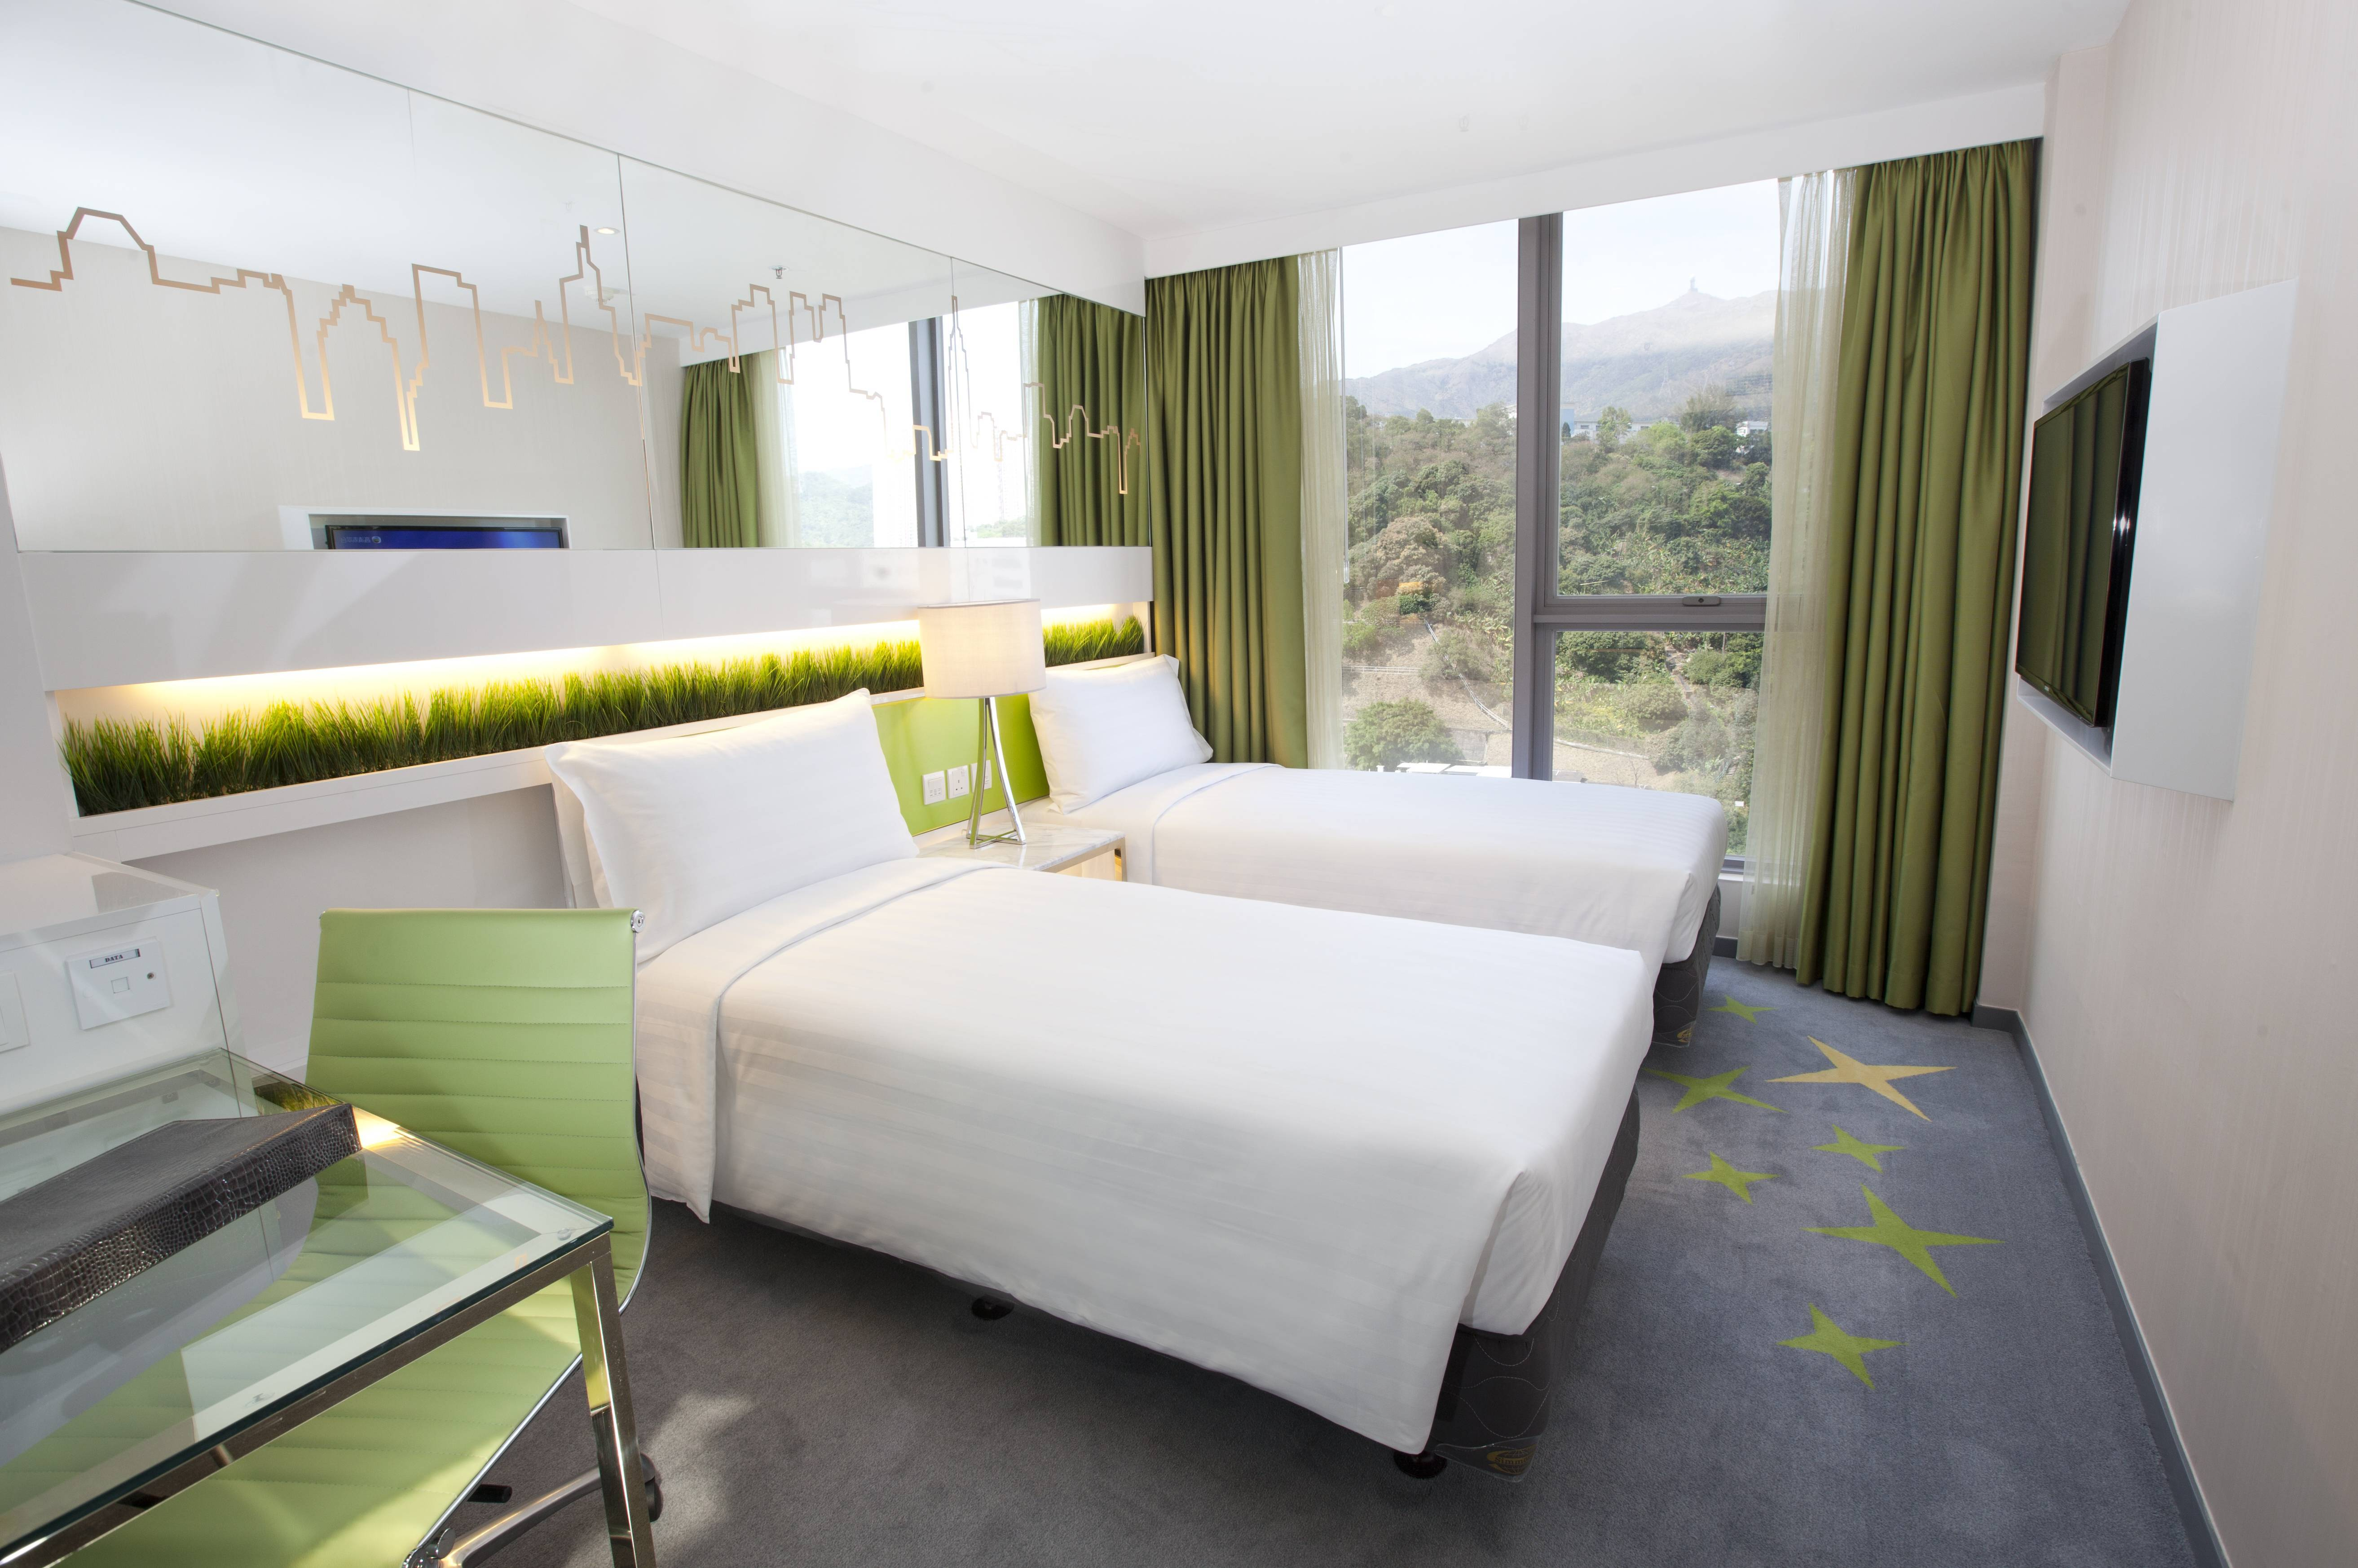 Dorsett Twin Room A fresh and modern design touch with plenty of room